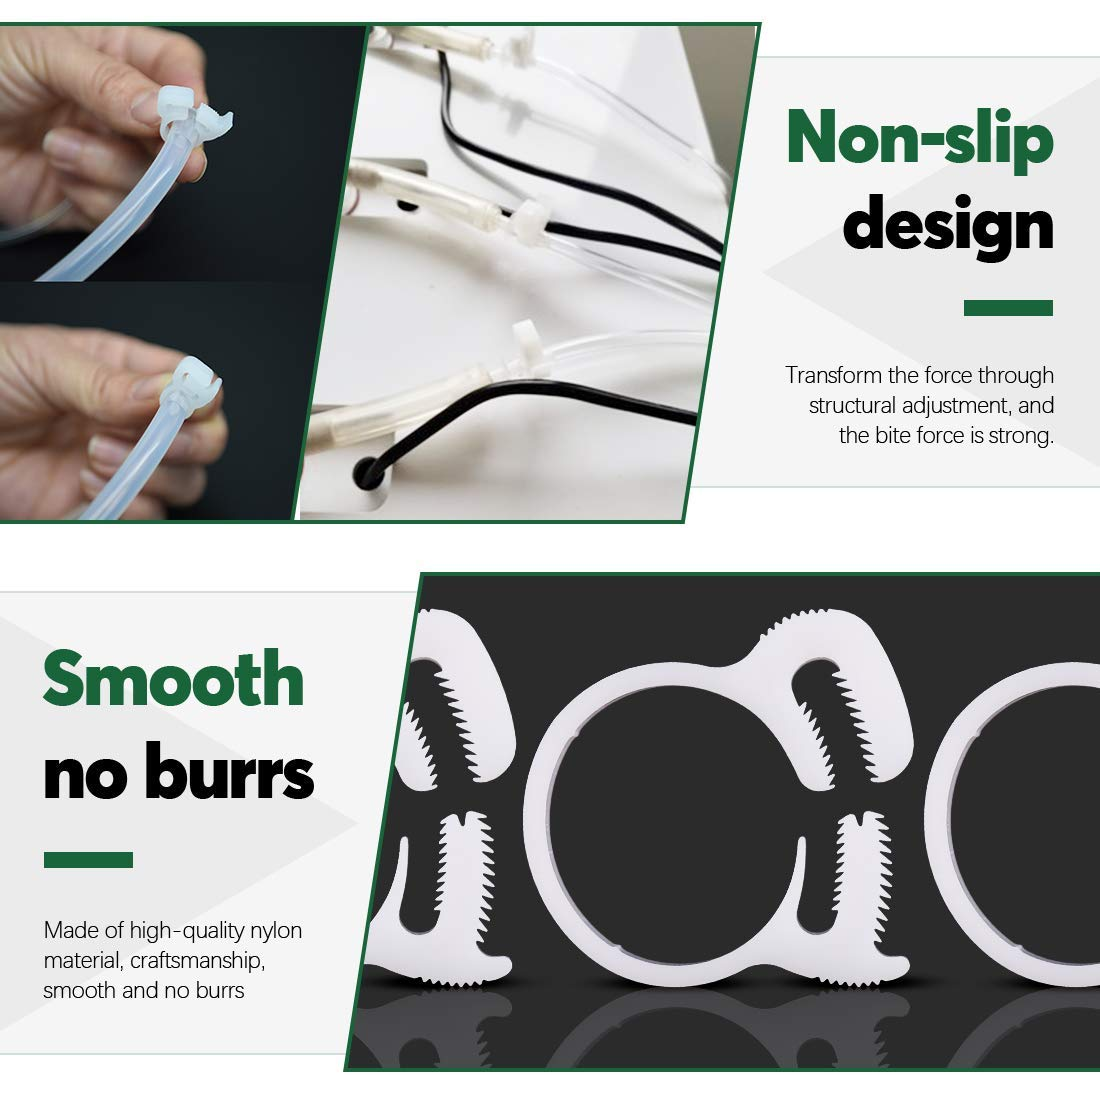 Quickun 1//4 Heavy Duty Double Snap Grip Nylon Hose Clamps Several Ratcheting Adjustable Clamp 2 Packs